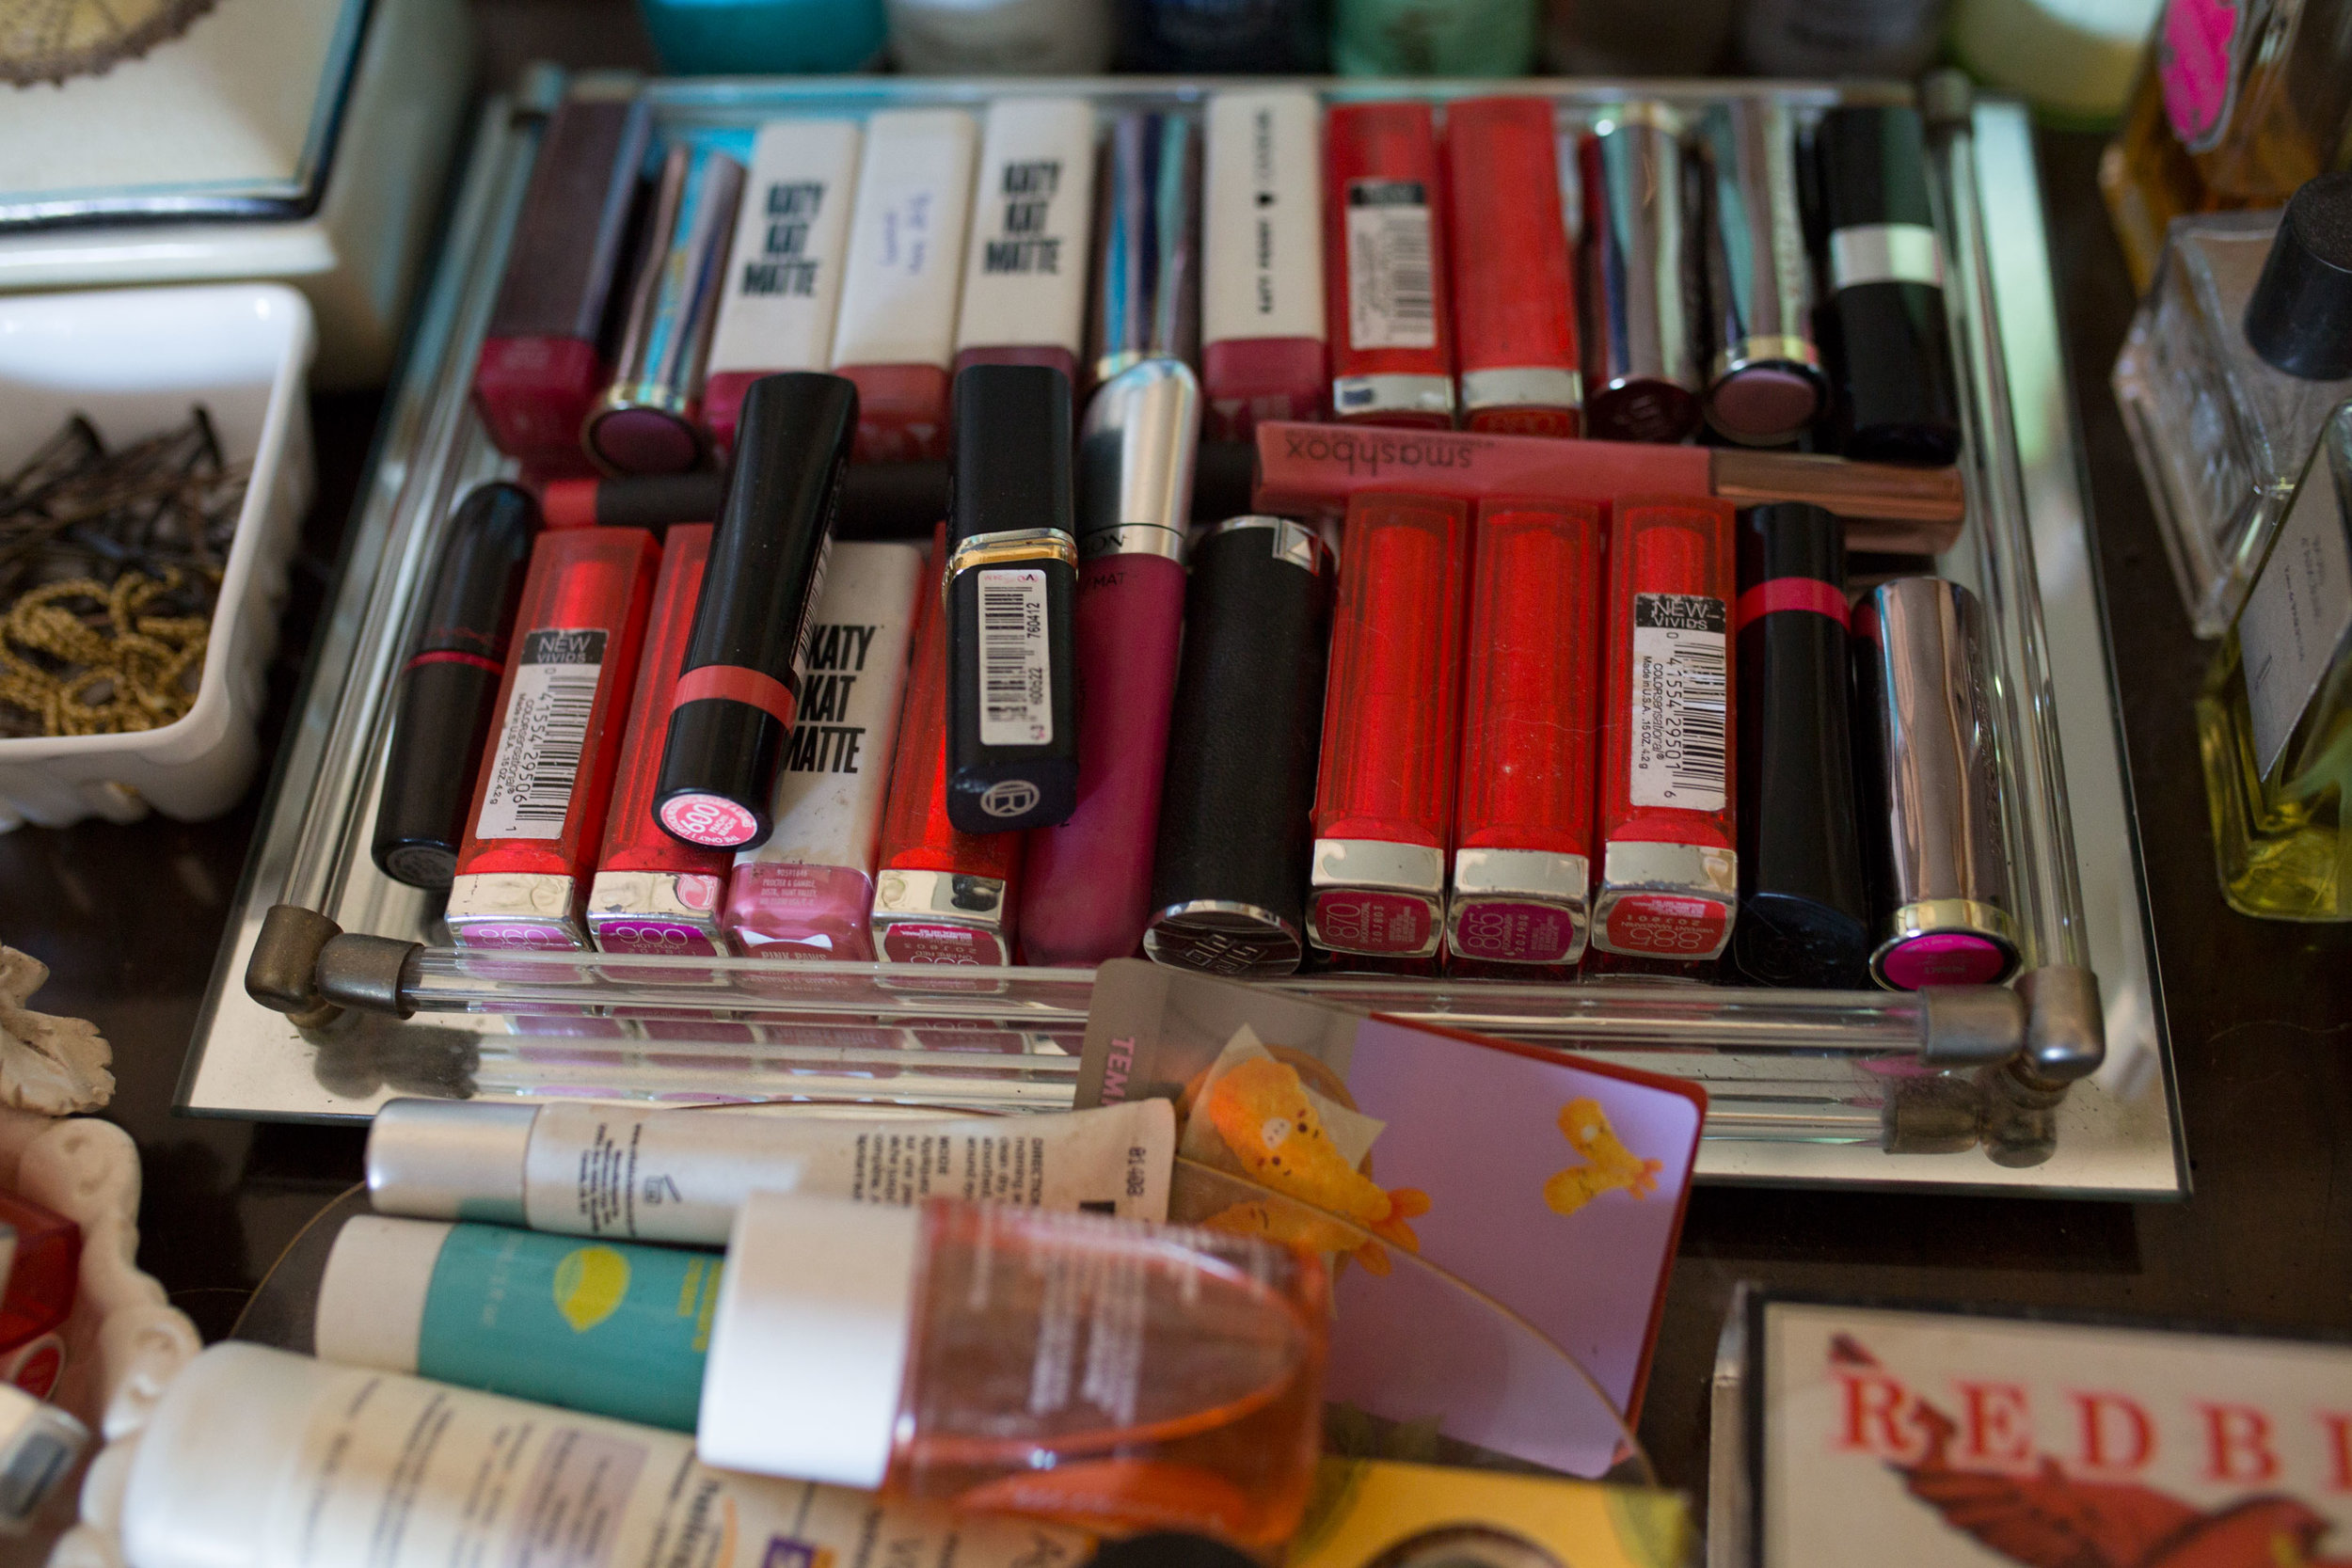 Some of the items in Briony's makeup collection